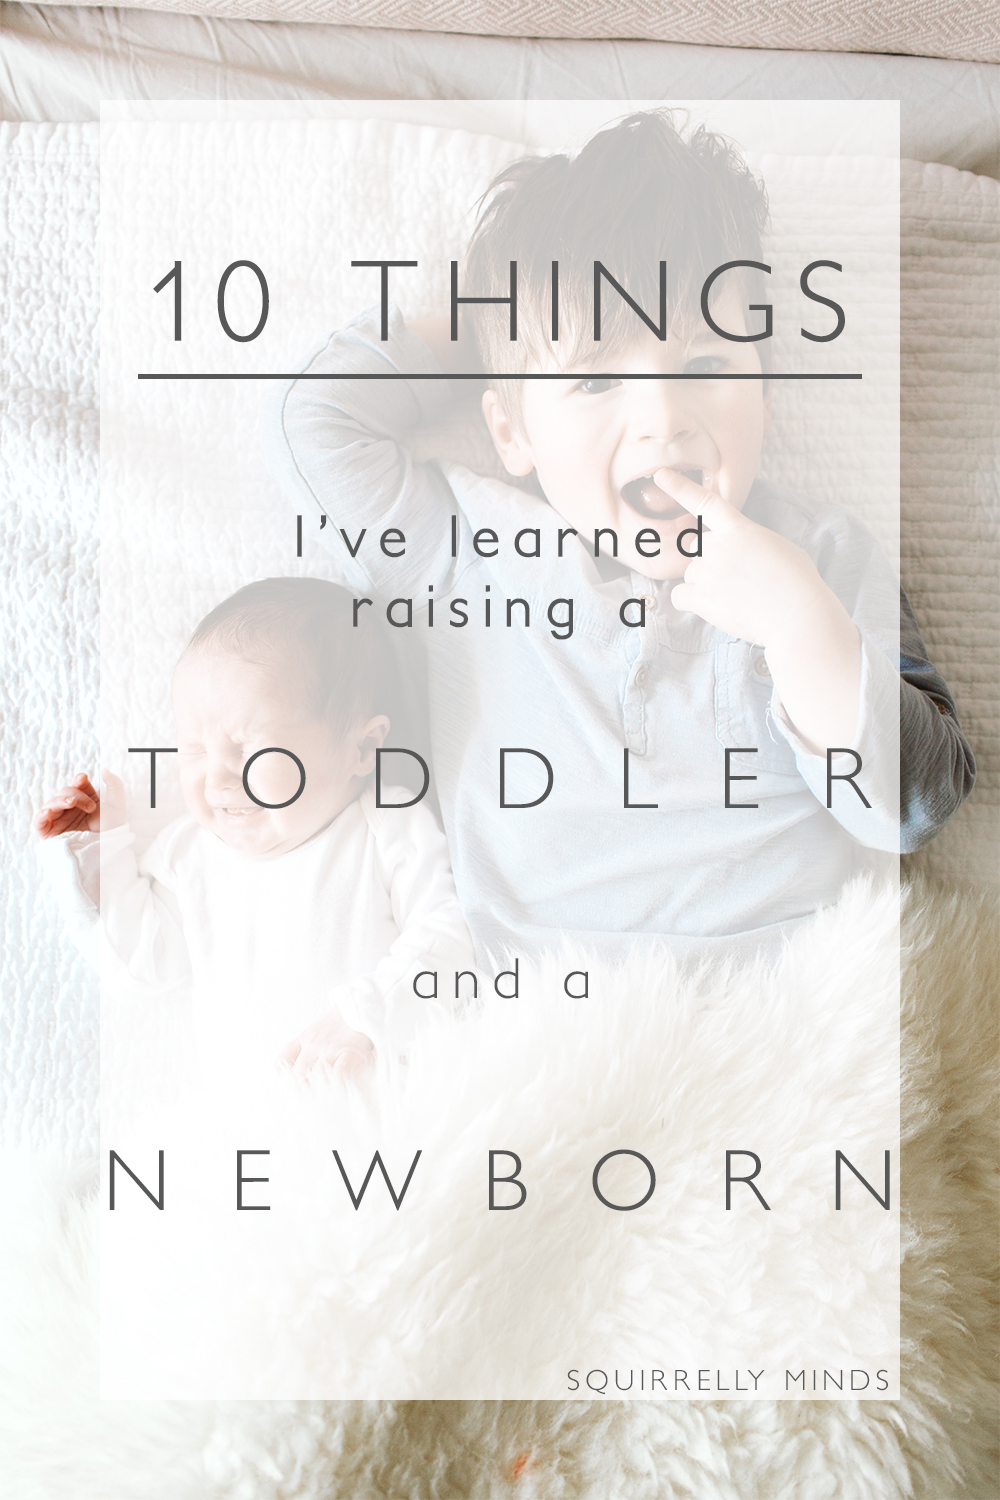 10 things I've learned raising a toddler and newborn | Squirrelly Minds